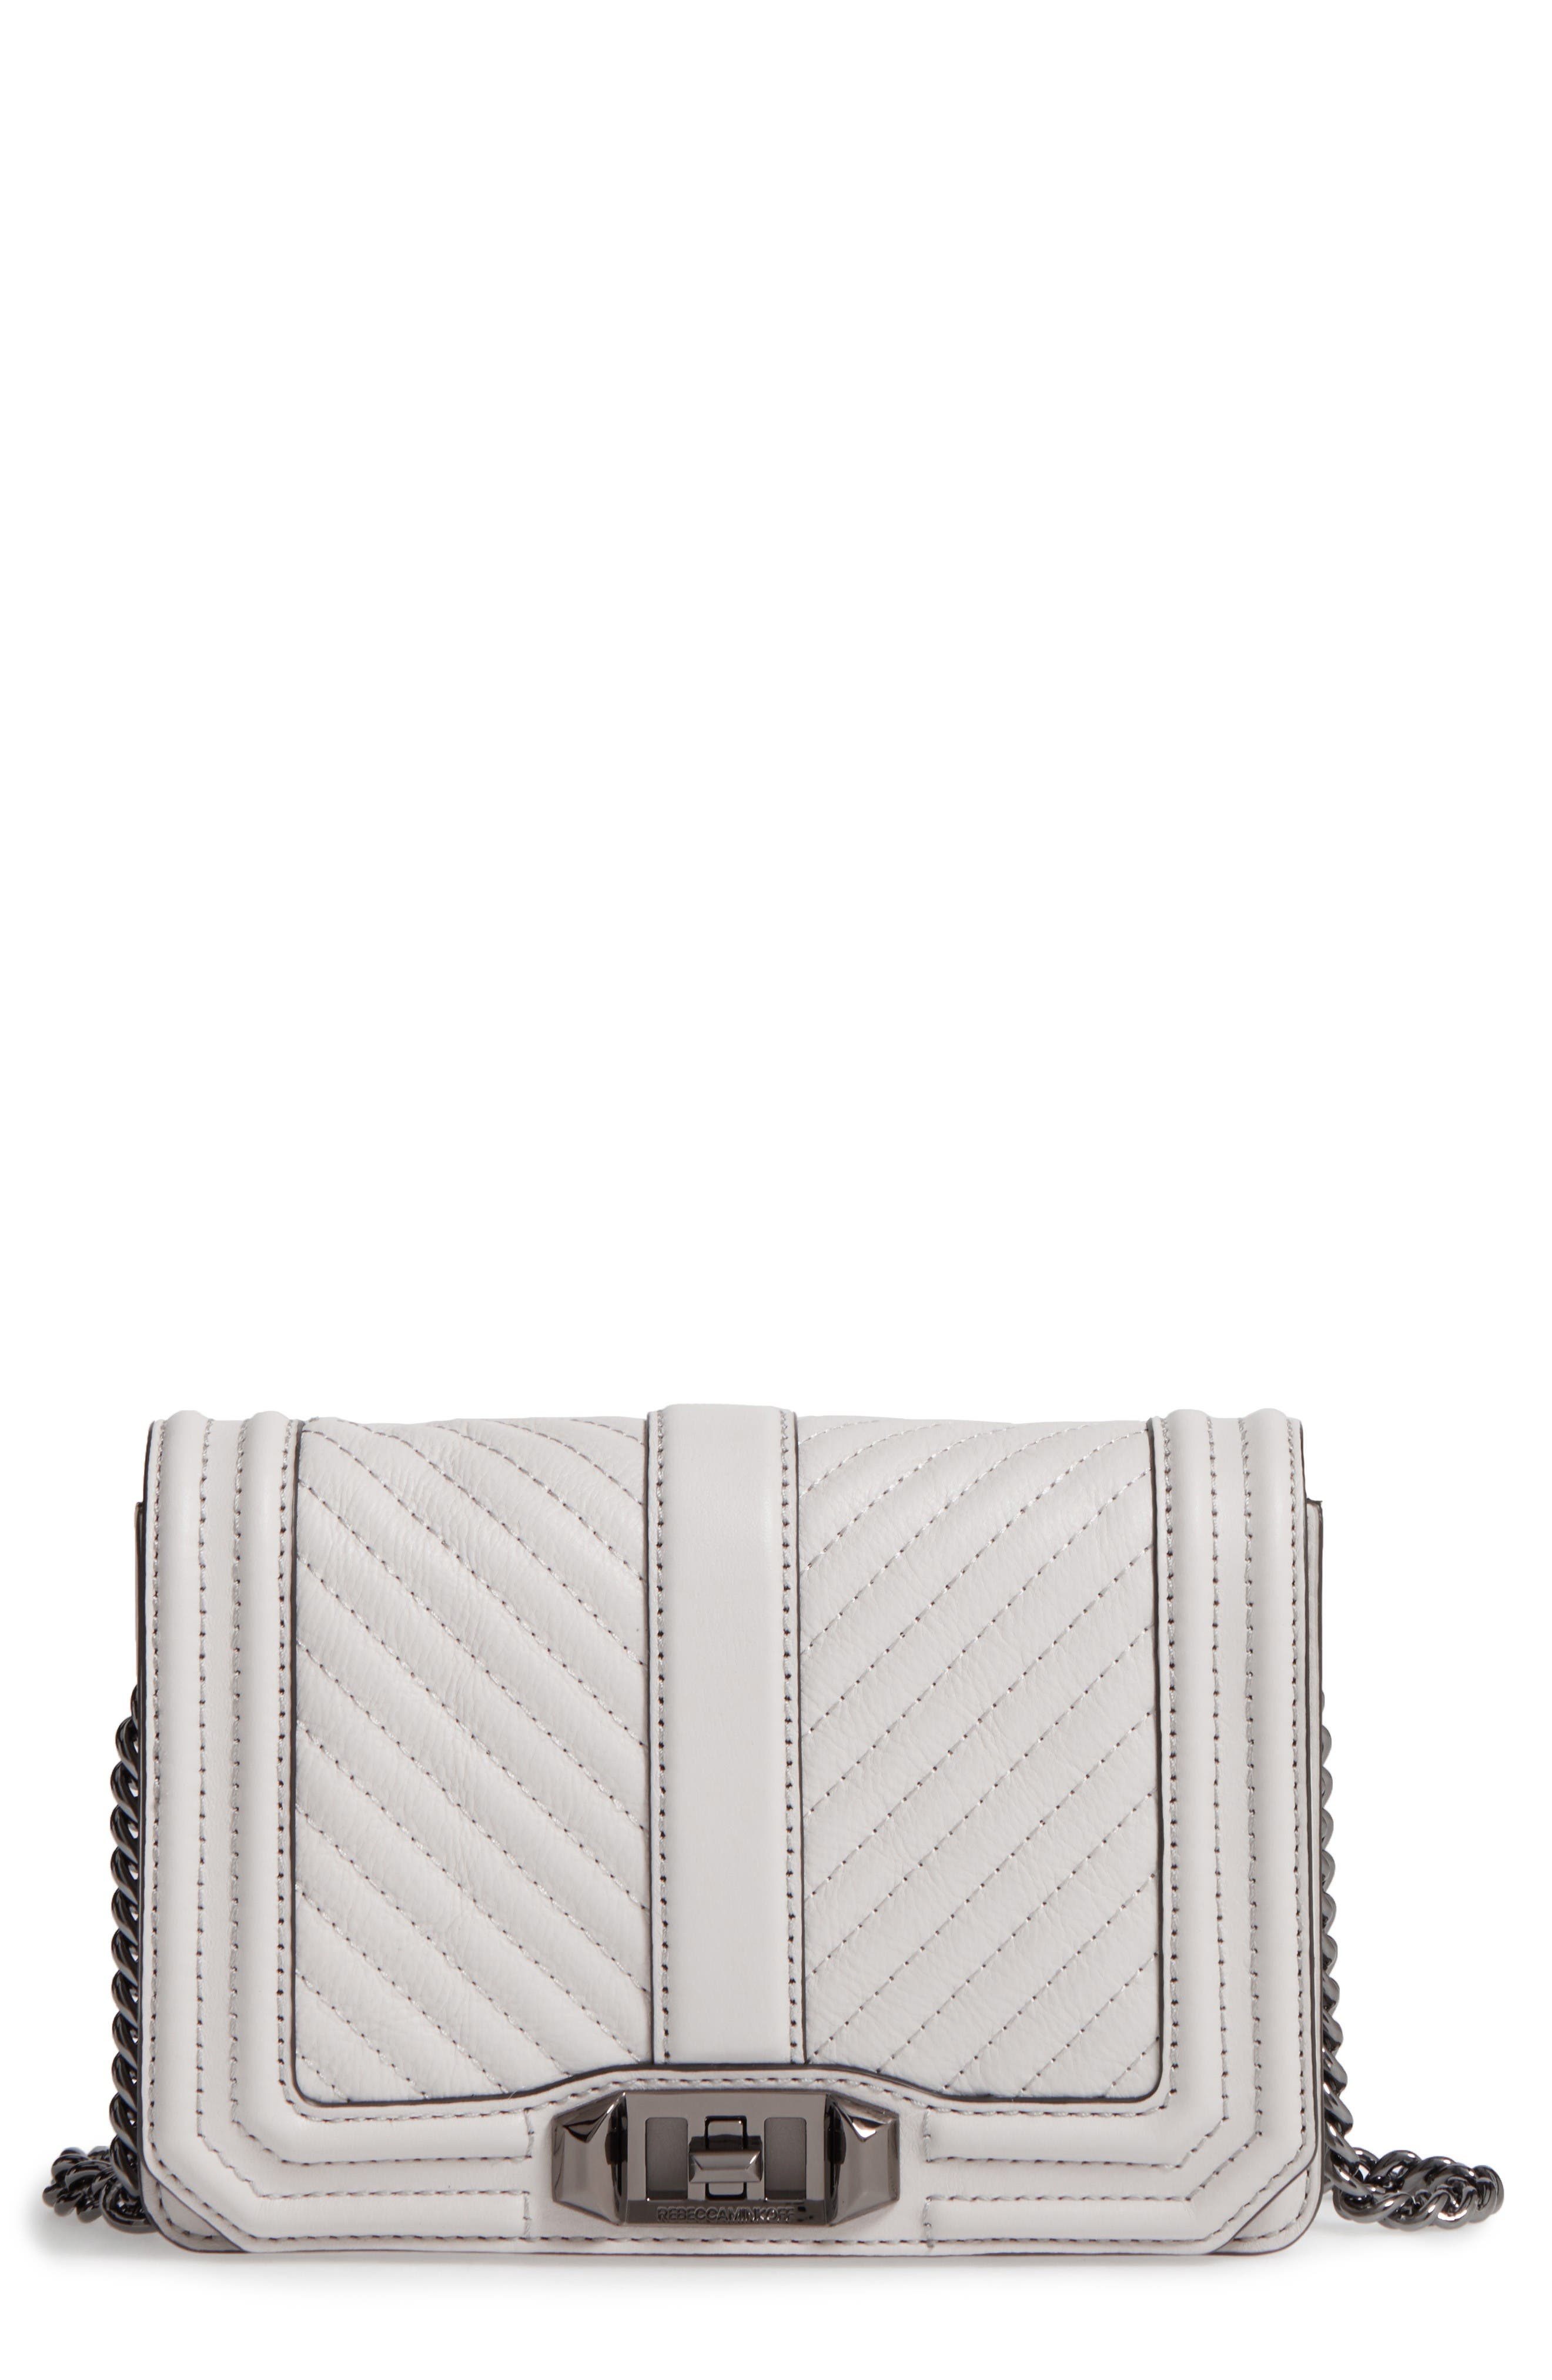 Alternate Image 1 Selected - Rebecca Minkoff Small Love Leather Crossbody Bag